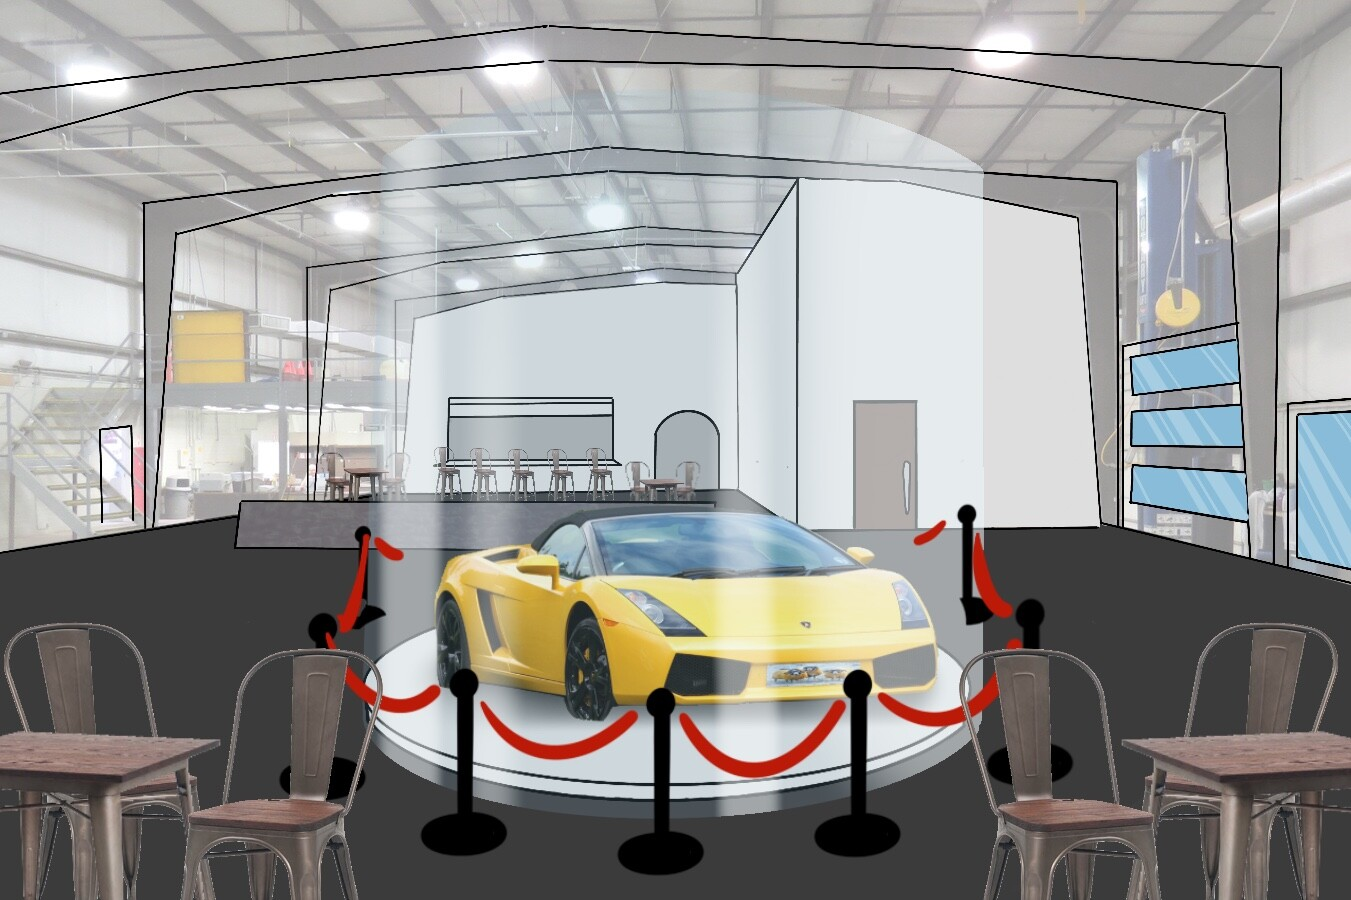 The centerpiece of the restaurant will be a luxury car, as ad space for a dealership, spinning on a display platform, encased in protective glass and sleek velvet rope.  ... *Read more in the description*